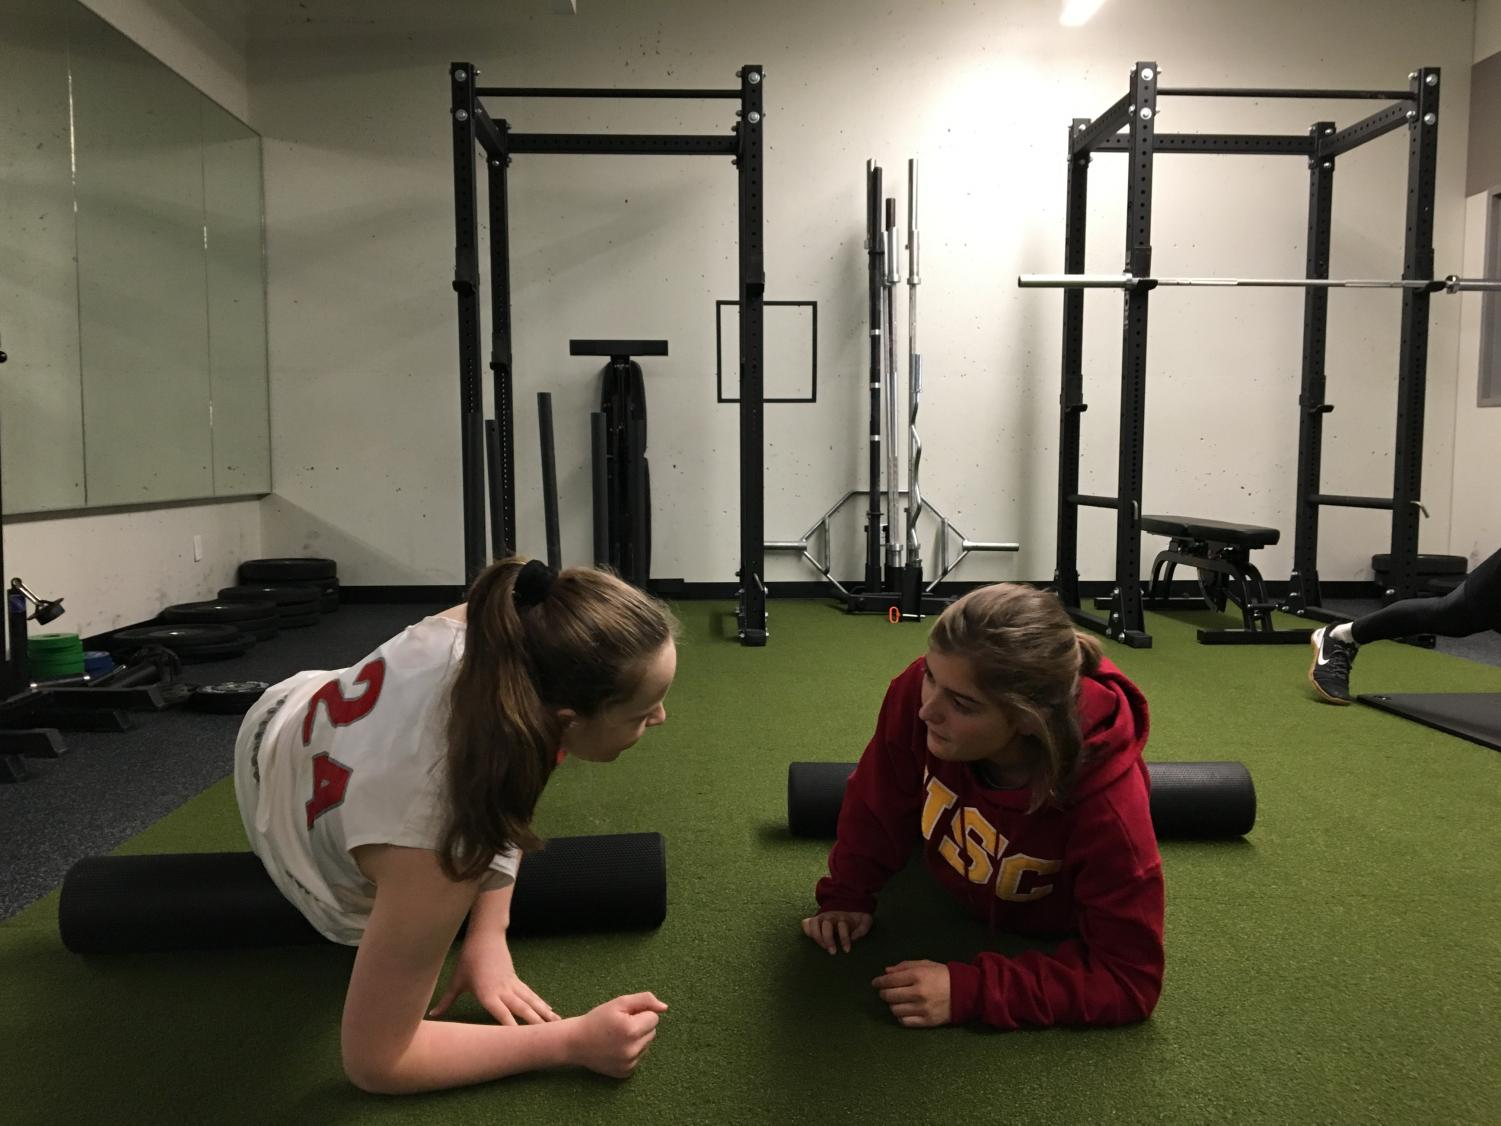 Sophomore Cecilia McQuaid and junior Sofia Telfer stretch in the weight room in the Herbert Center. The new mural will be painted on the back wall of this room.